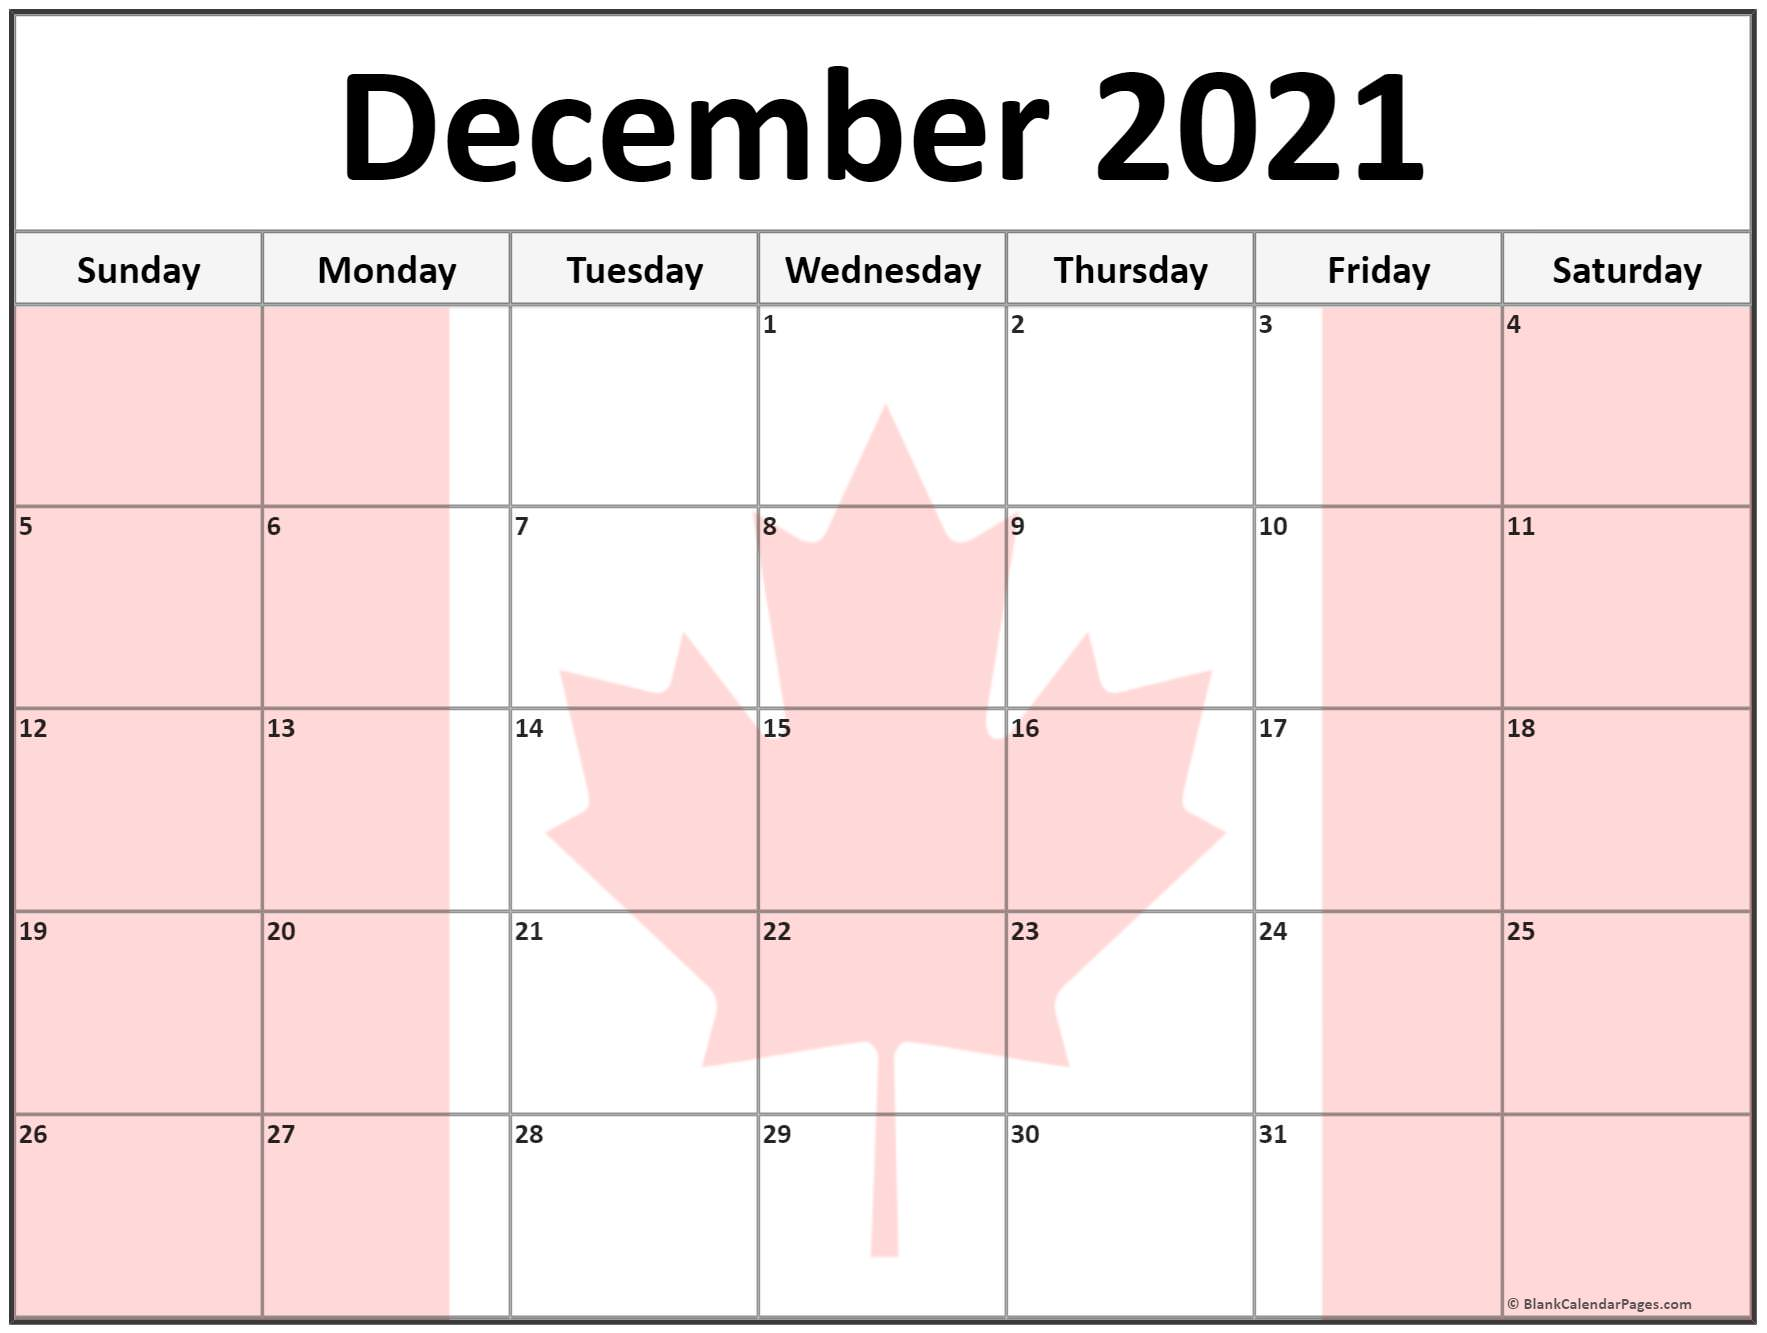 December 2021 Canada flag monthly calendar printout